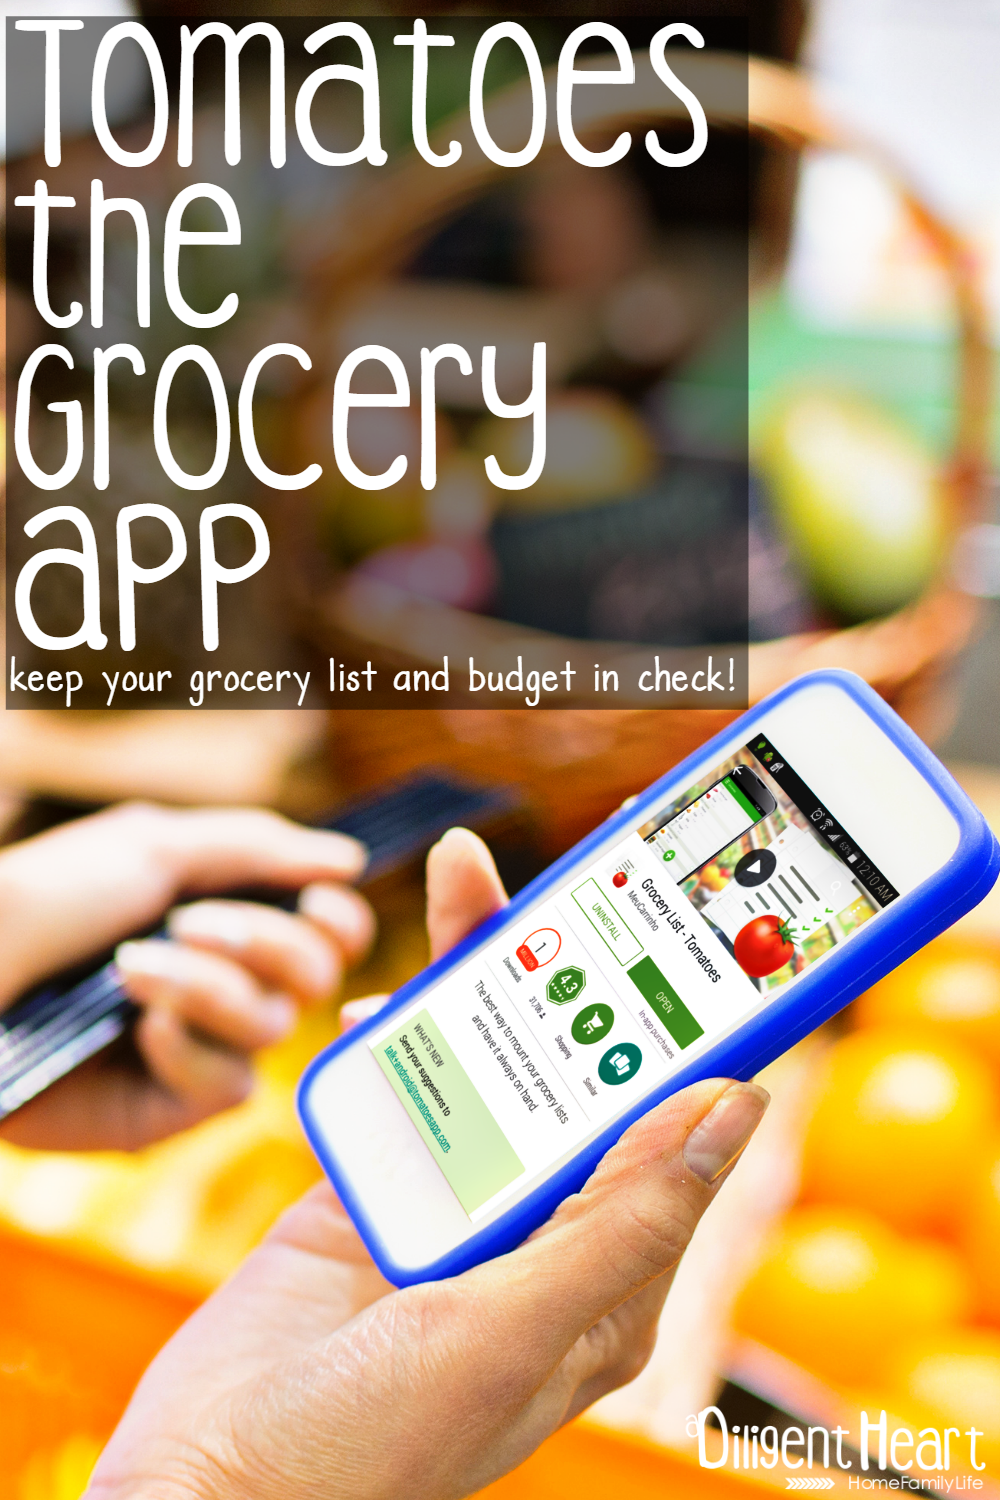 Need help staying on top of your grocery budget? This app will not only help you do that but it will store your custom pricing! Which means, you can plan out futures grocery trips budget before even heading to the store! Check out Tomatoes the Grocery App I adiligentheart.com